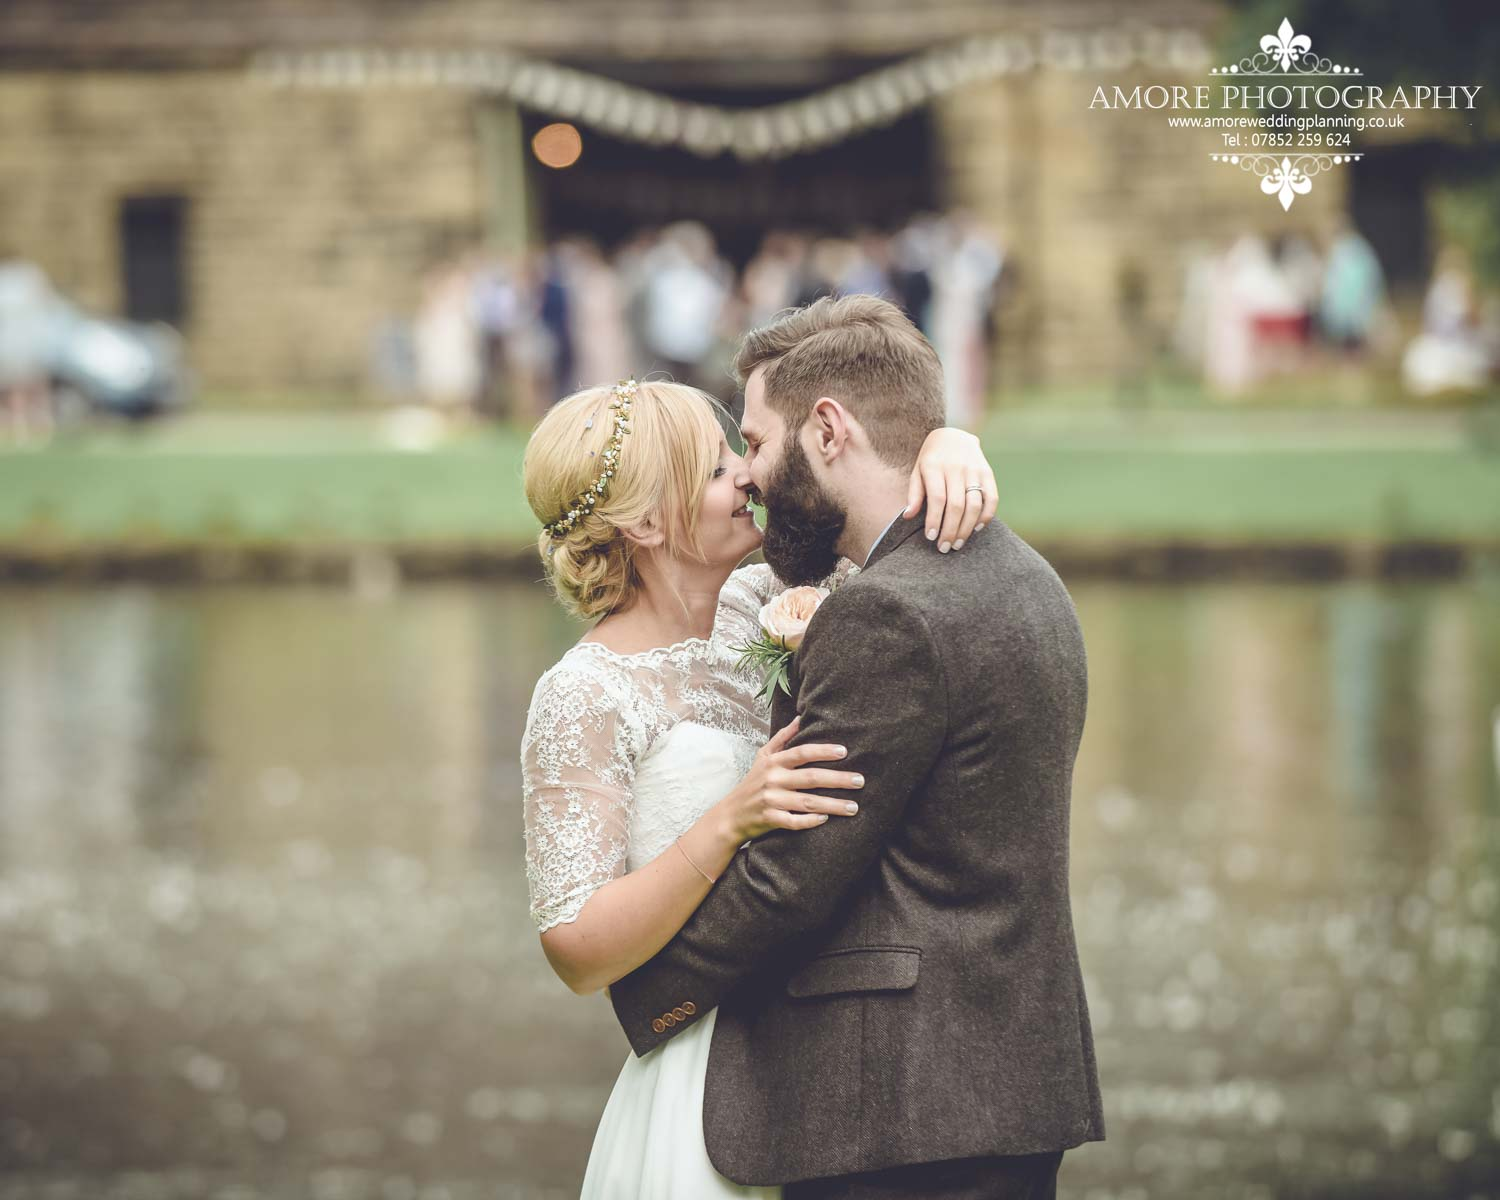 Vintage Wedding Photographer Wakefield North Yorkshire Leeds Wedding Photography Vintage Rustic Barn Weddings (114)